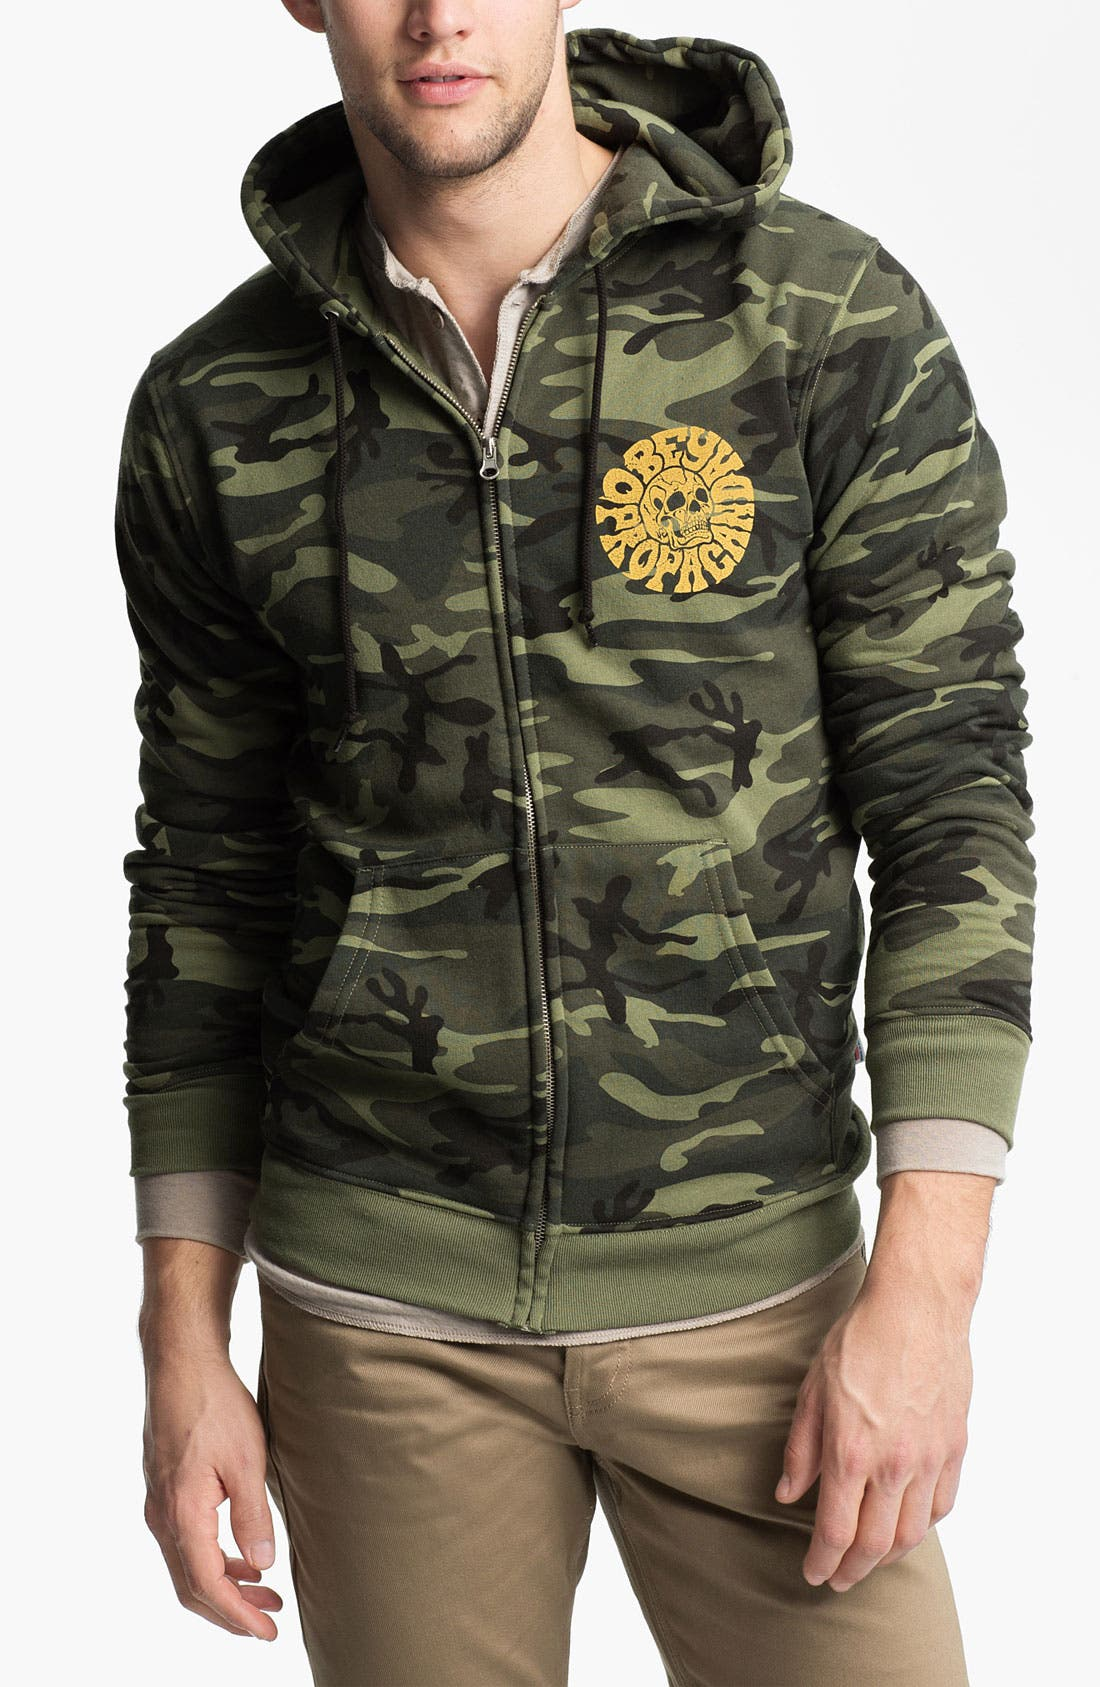 Alternate Image 1 Selected - Obey 'Skull' Graphic Camo Hoodie